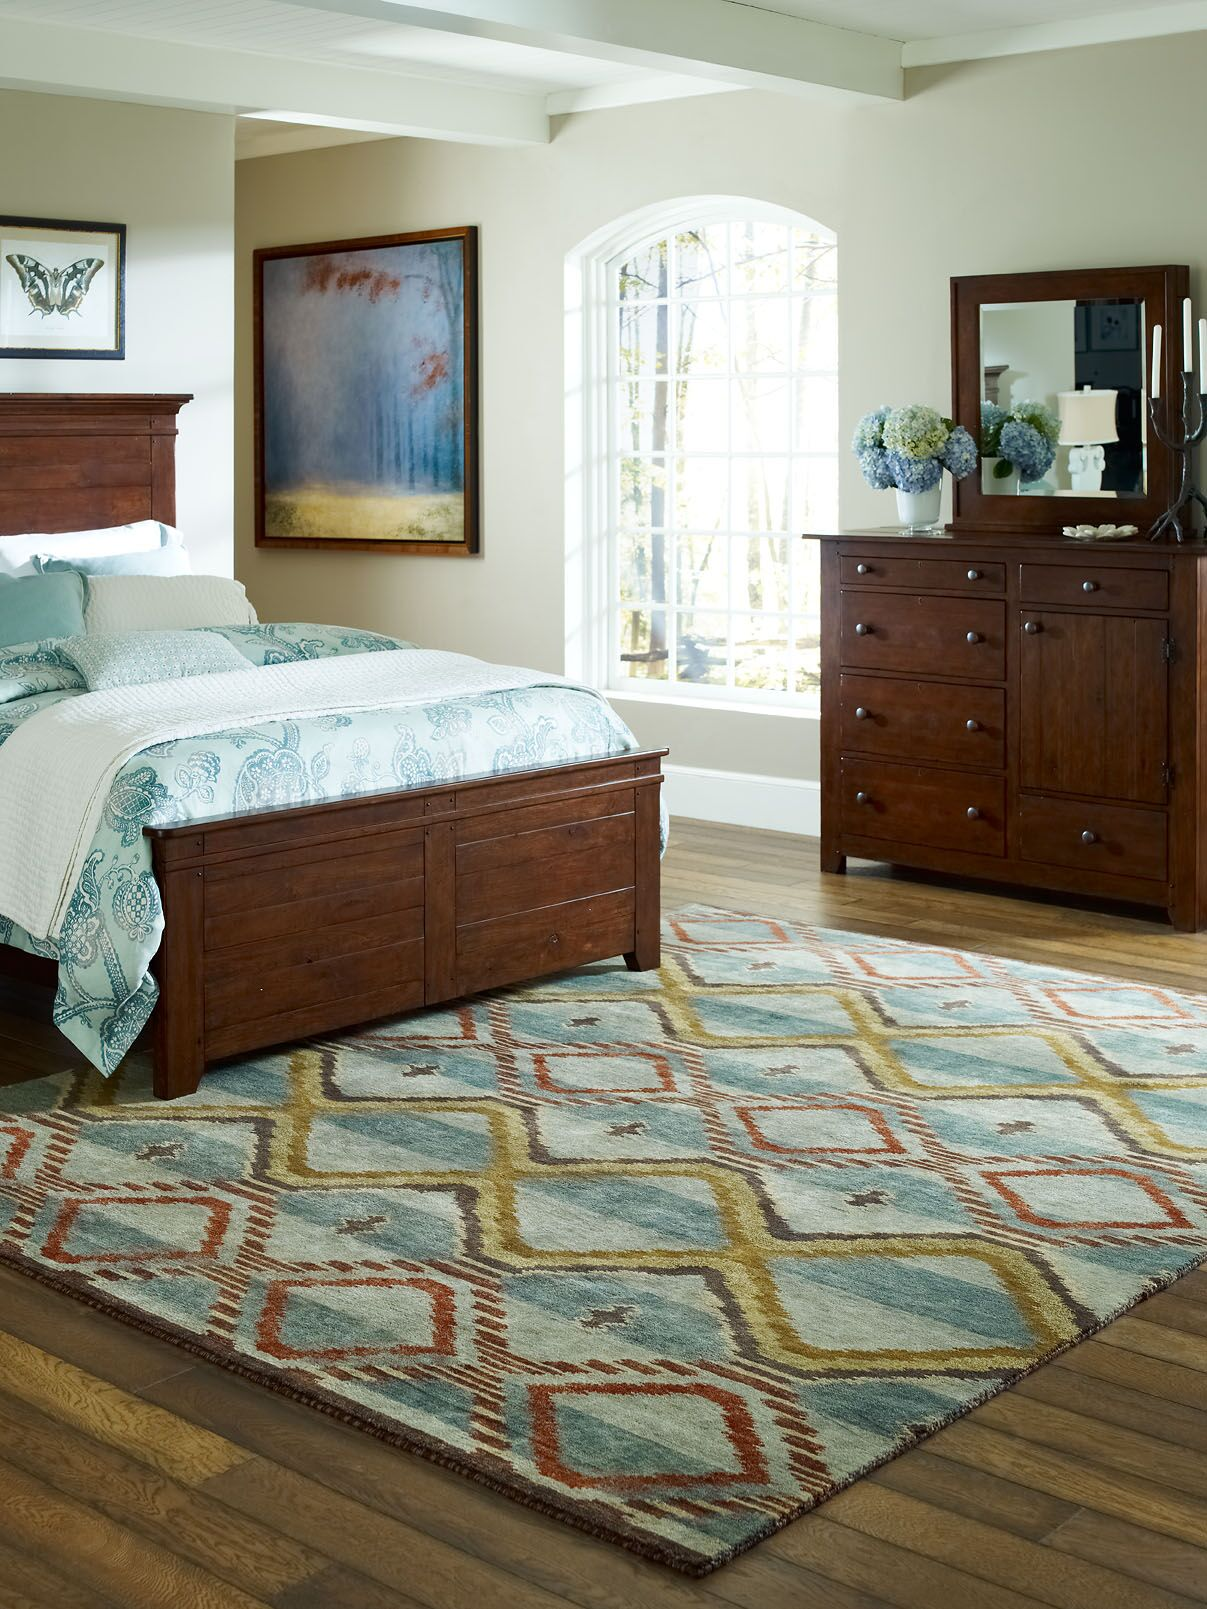 Keddie Hand-Knotted Wool Blue/Beige Area Rug Rug Size: Rectangle 8' x 10'